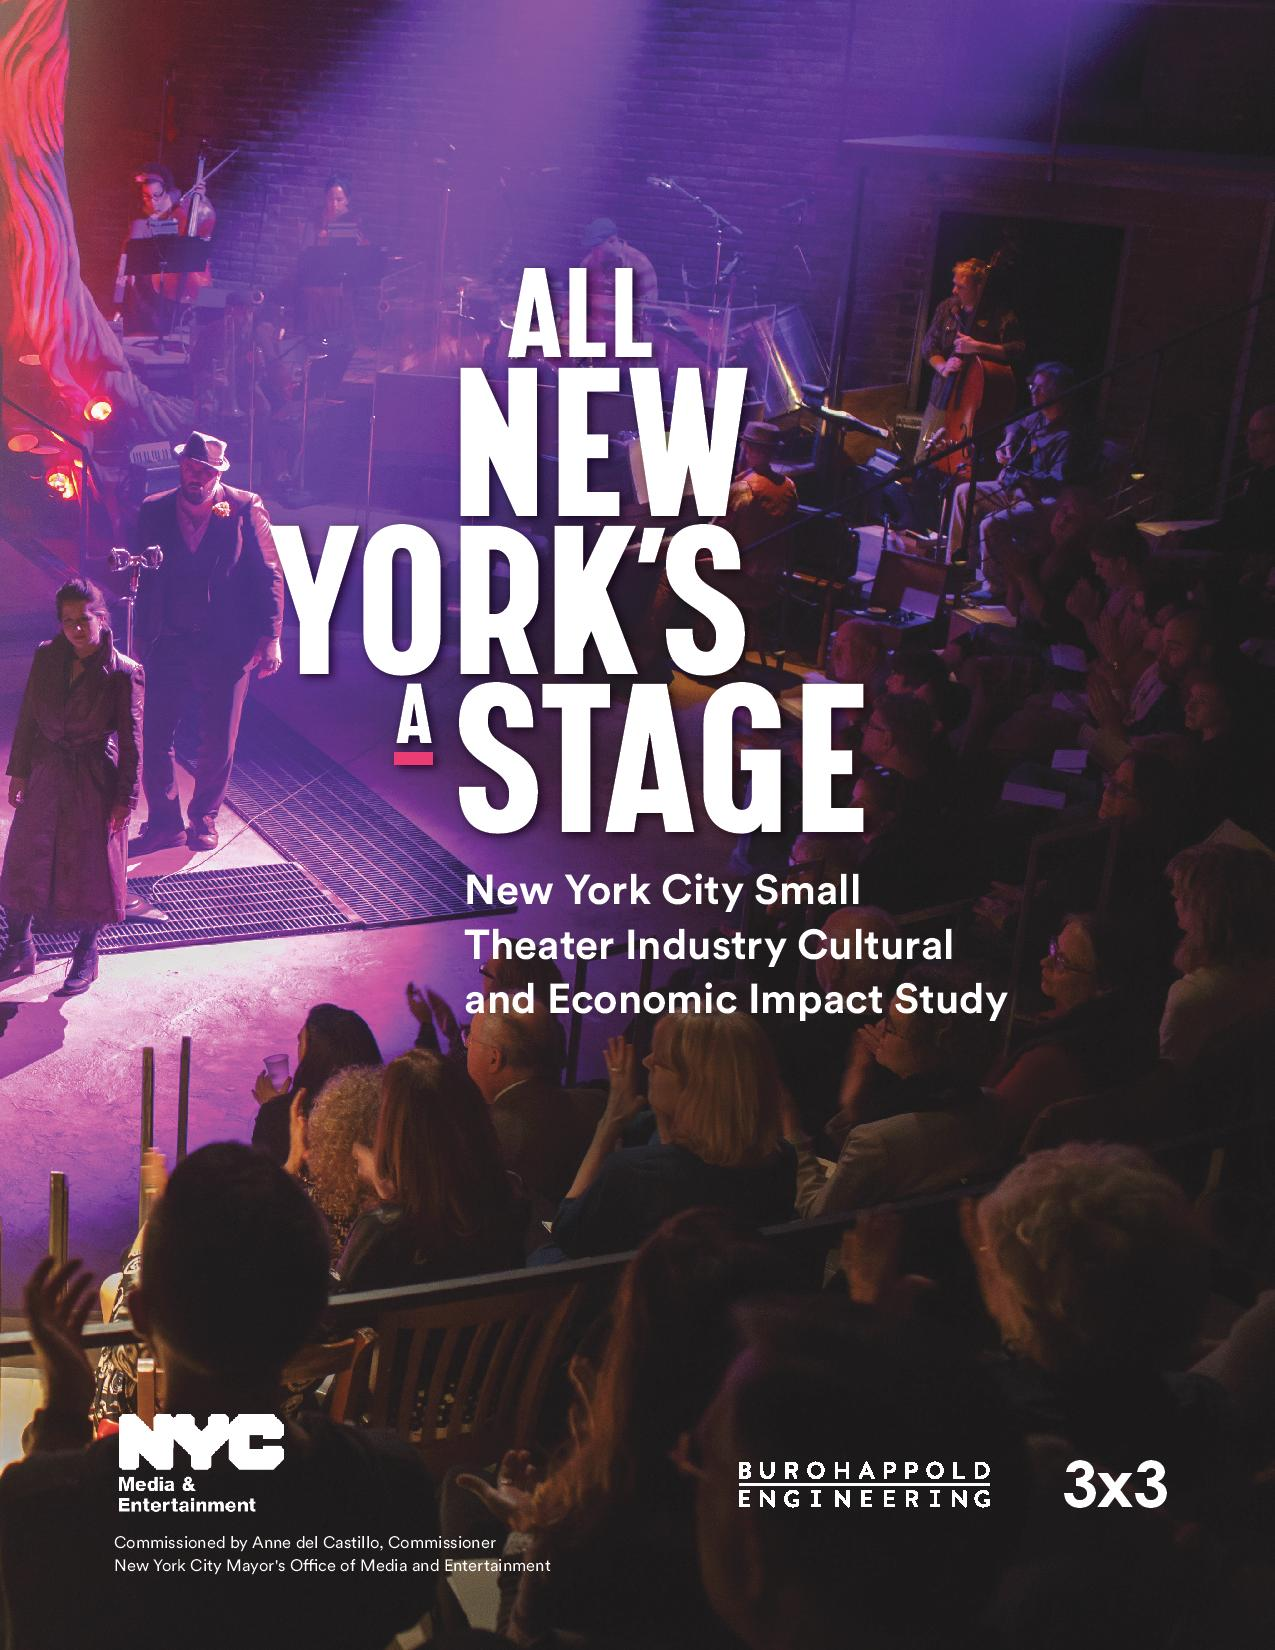 Small Theater Industry Cultural and Economic Impact Study